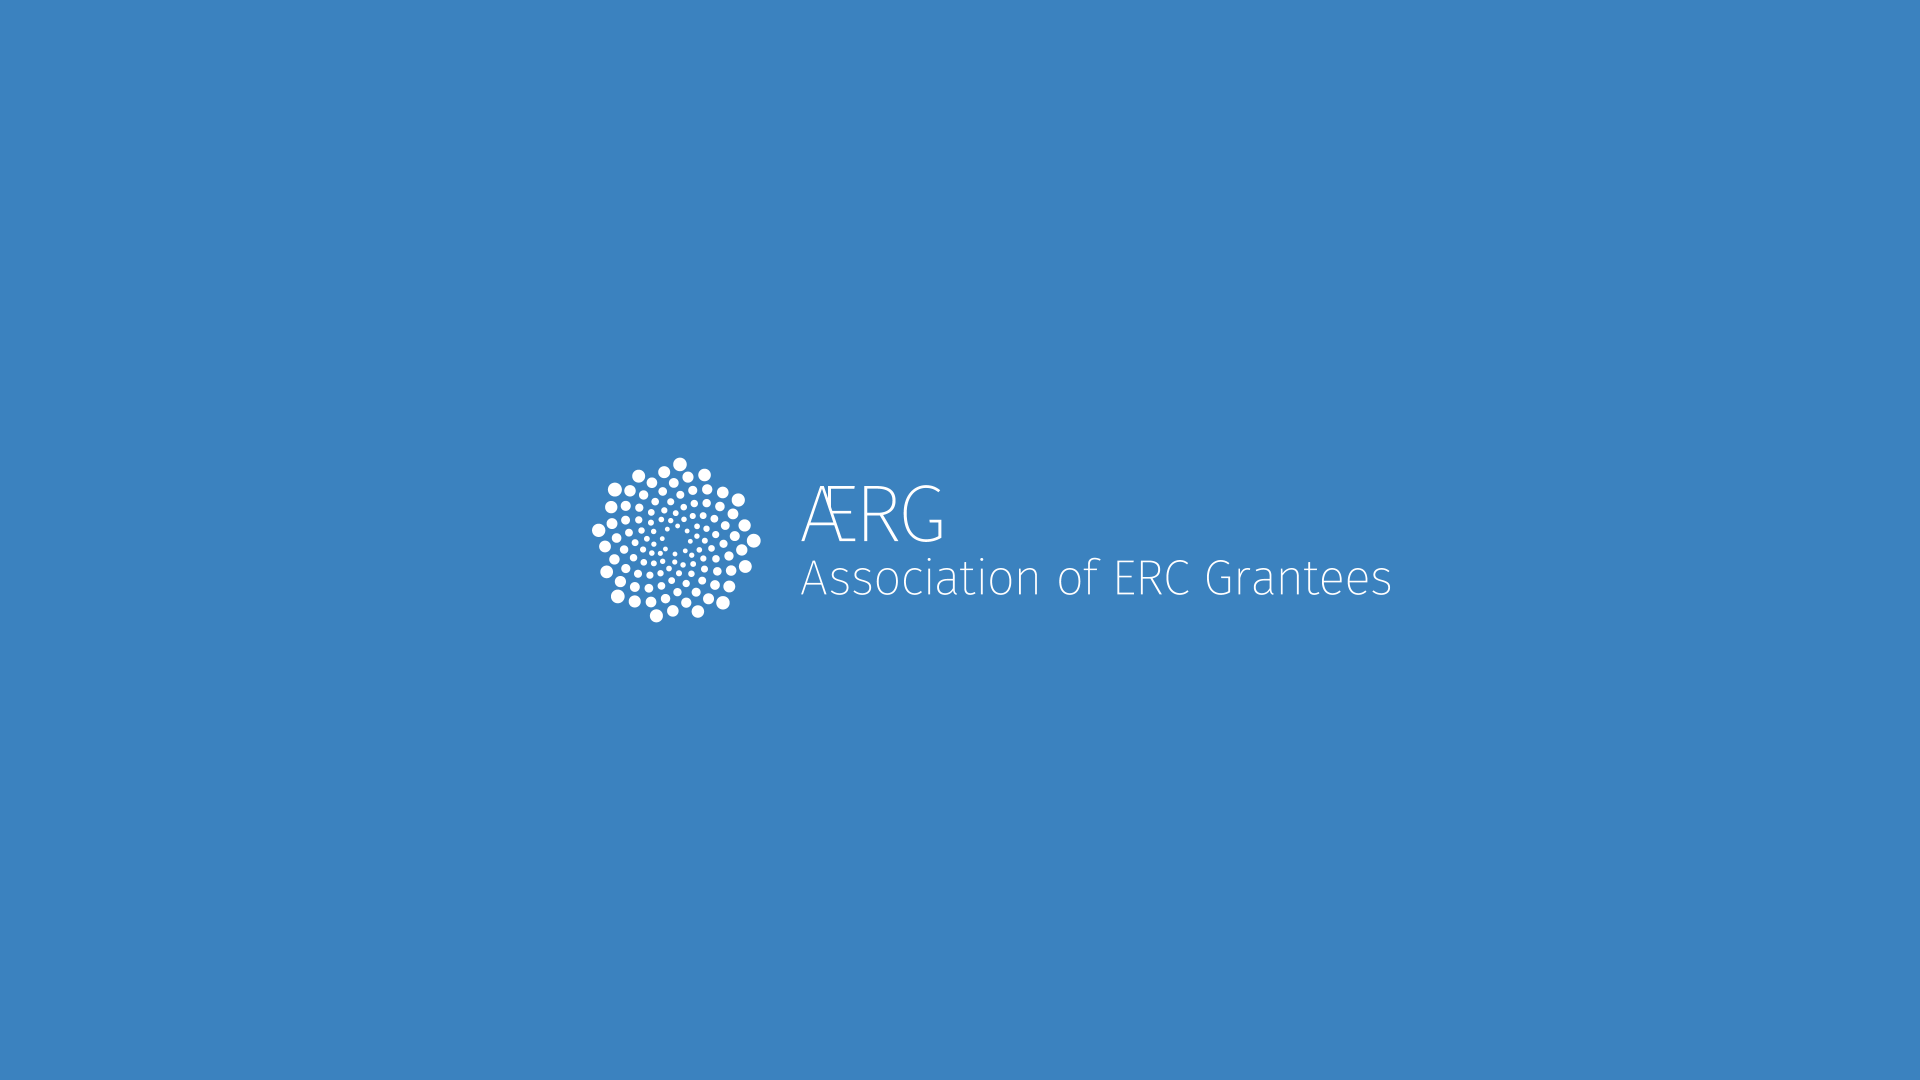 Launch of the Association of ERC Grantees